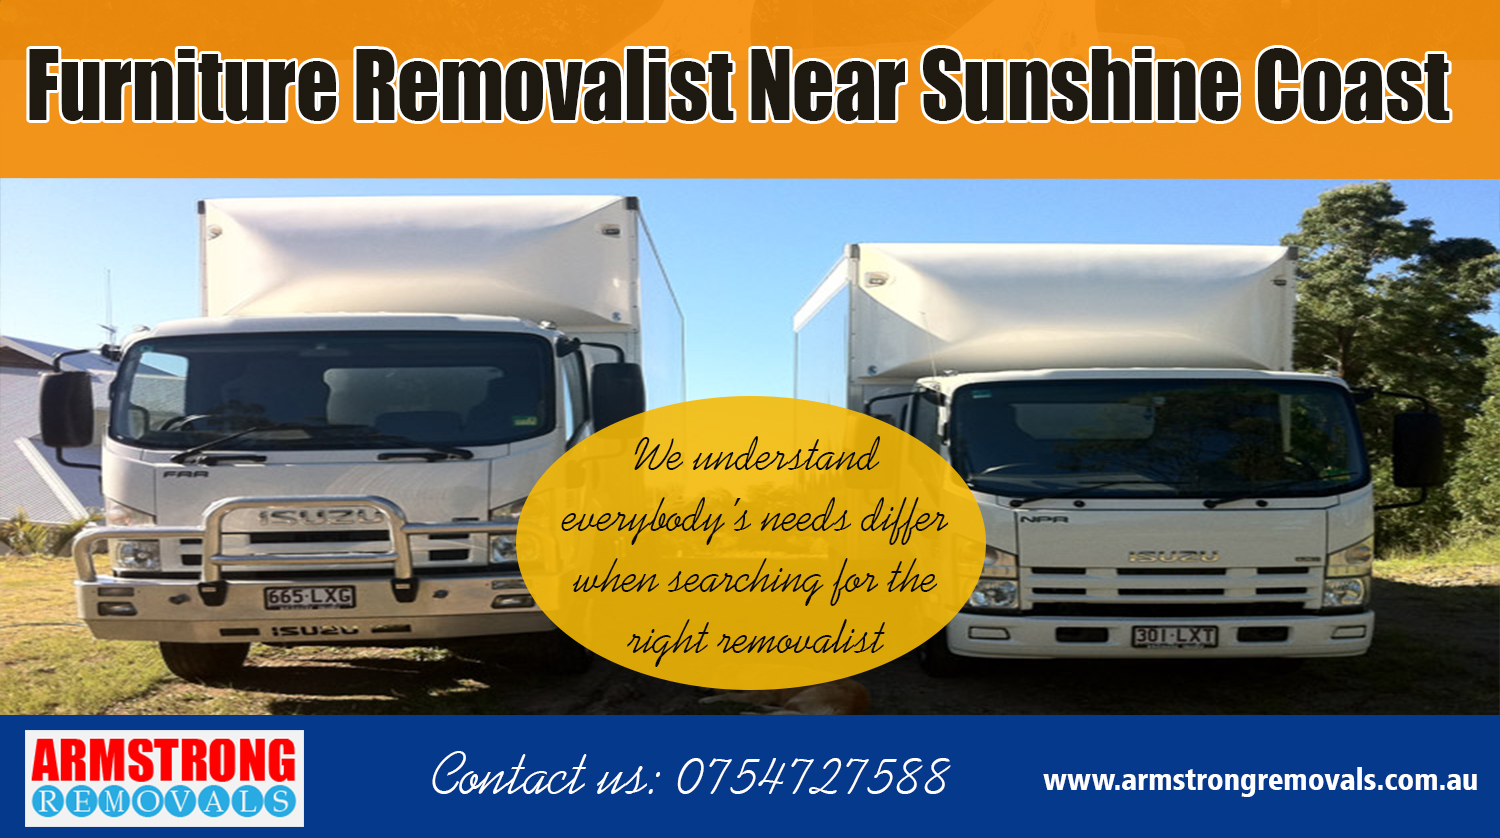 Furniture Removalist Near Sunshine Coast